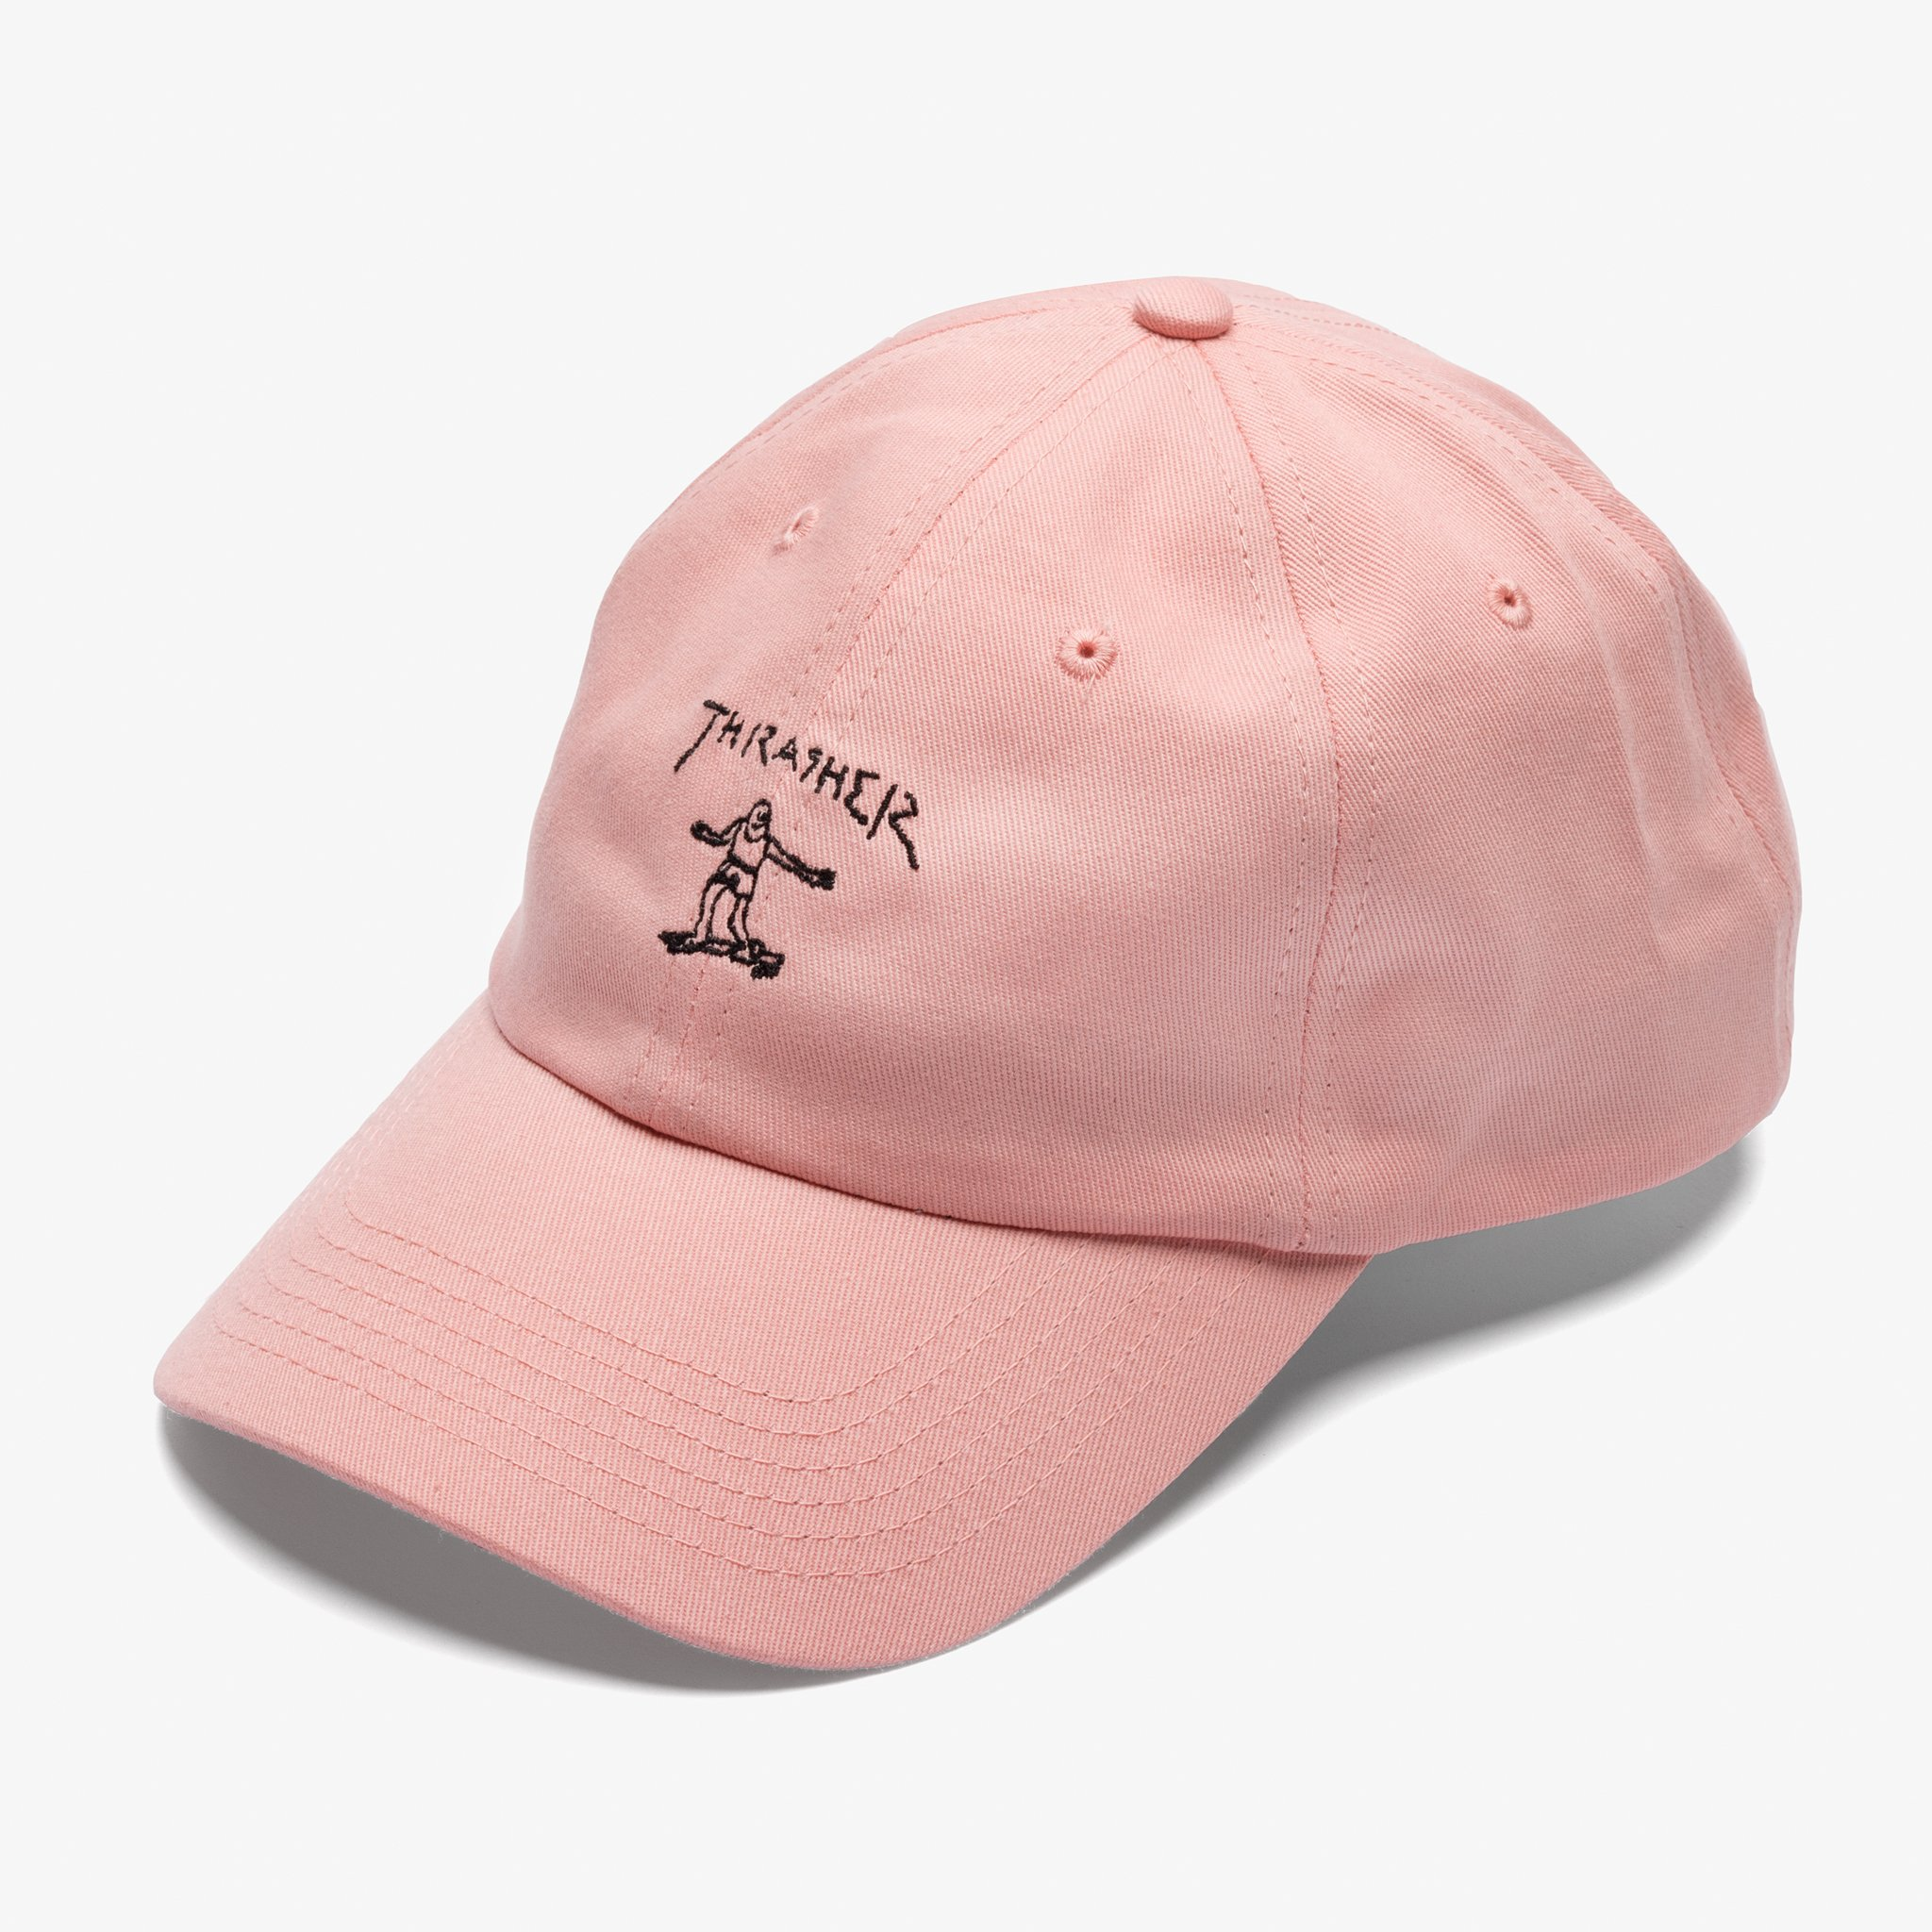 Thrasher GONZ OLD TIMER HAT pink